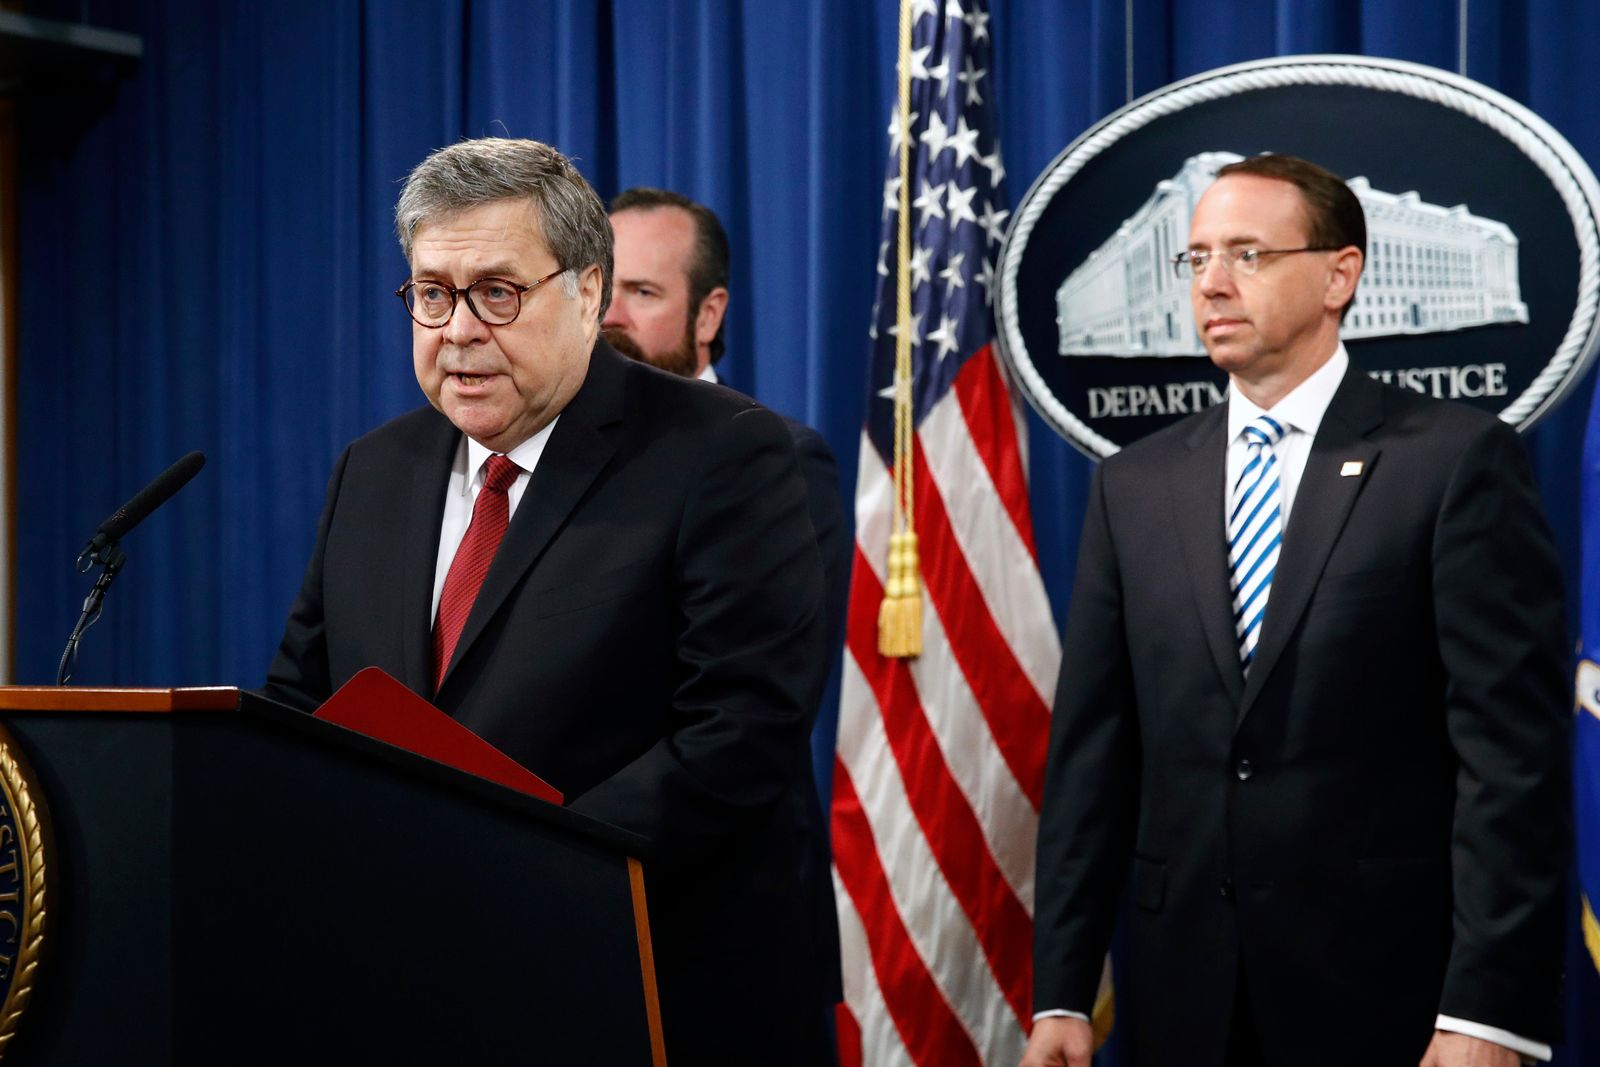 Attorney General William Barr speaks alongside Deputy Attorney General Rod Rosenstein, right, and acting Principal Associate Deputy Attorney General Edward O'Callaghan, rear left, about the release of a redacted version of special counsel Robert Mueller's report during a news conference, Thursday, April 18, 2019, at the Department of Justice in Washington. (AP Photo/Patrick Semansky)